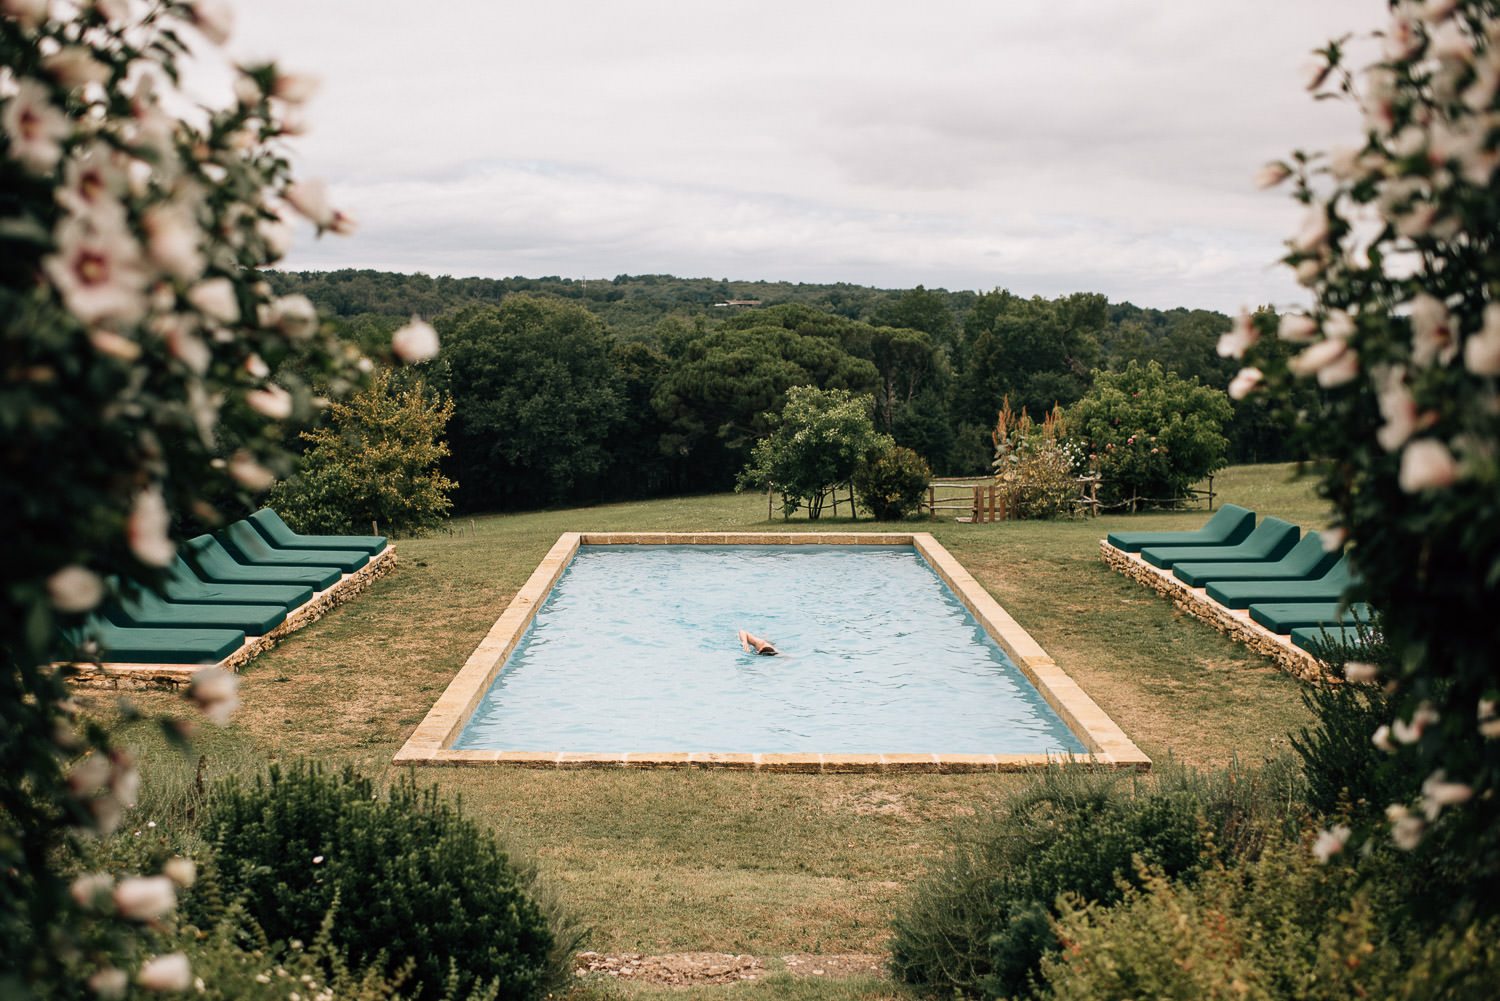 Swimming pool at Chateau de la Bourlie Wedding by creative and alternative destination wedding photographer the shannons photography